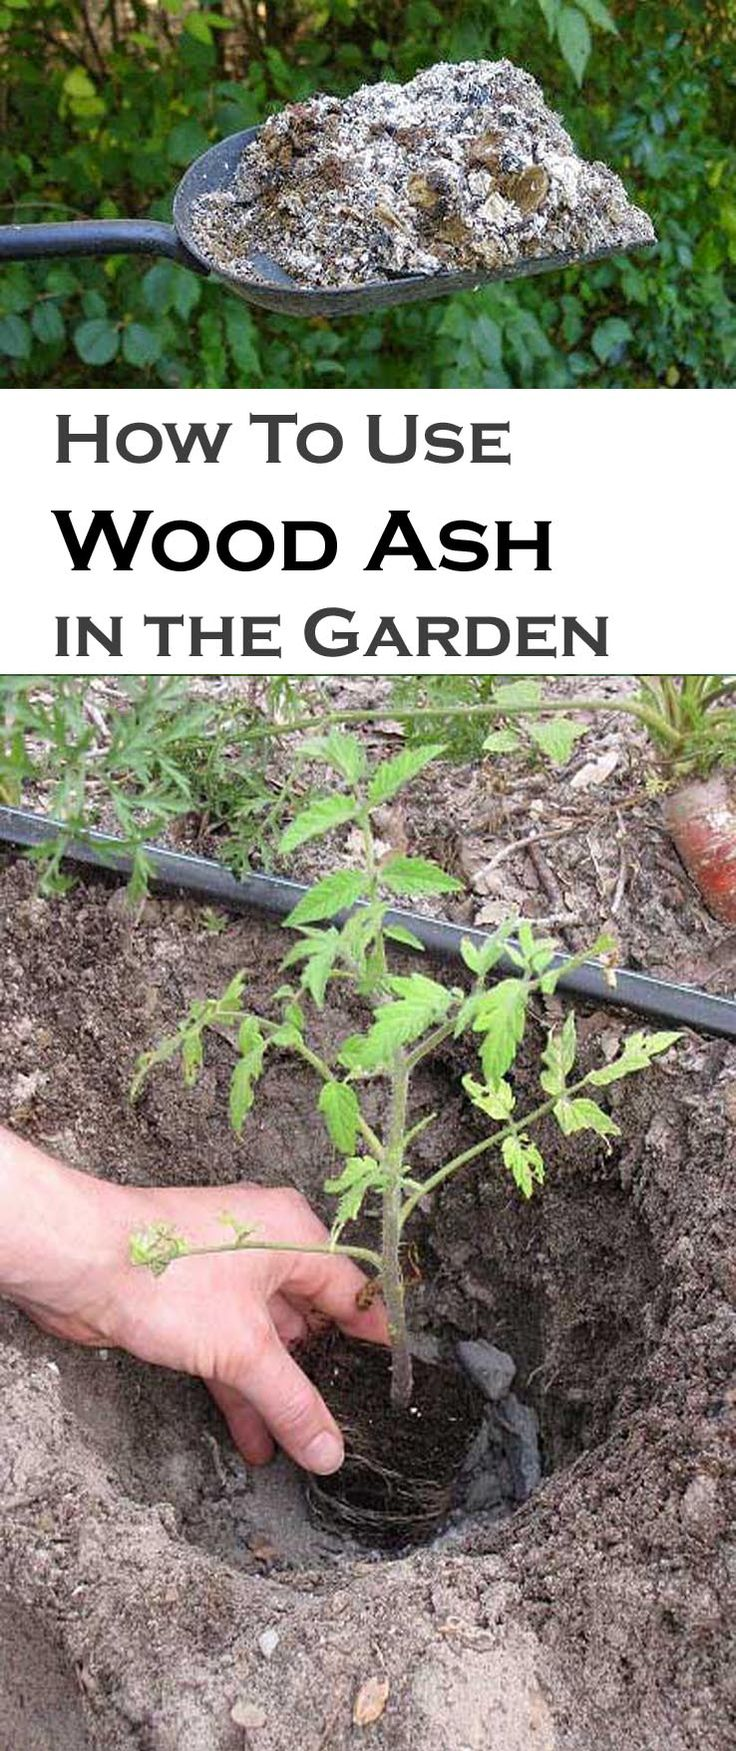 How to use Wood Ash correctly in the garden